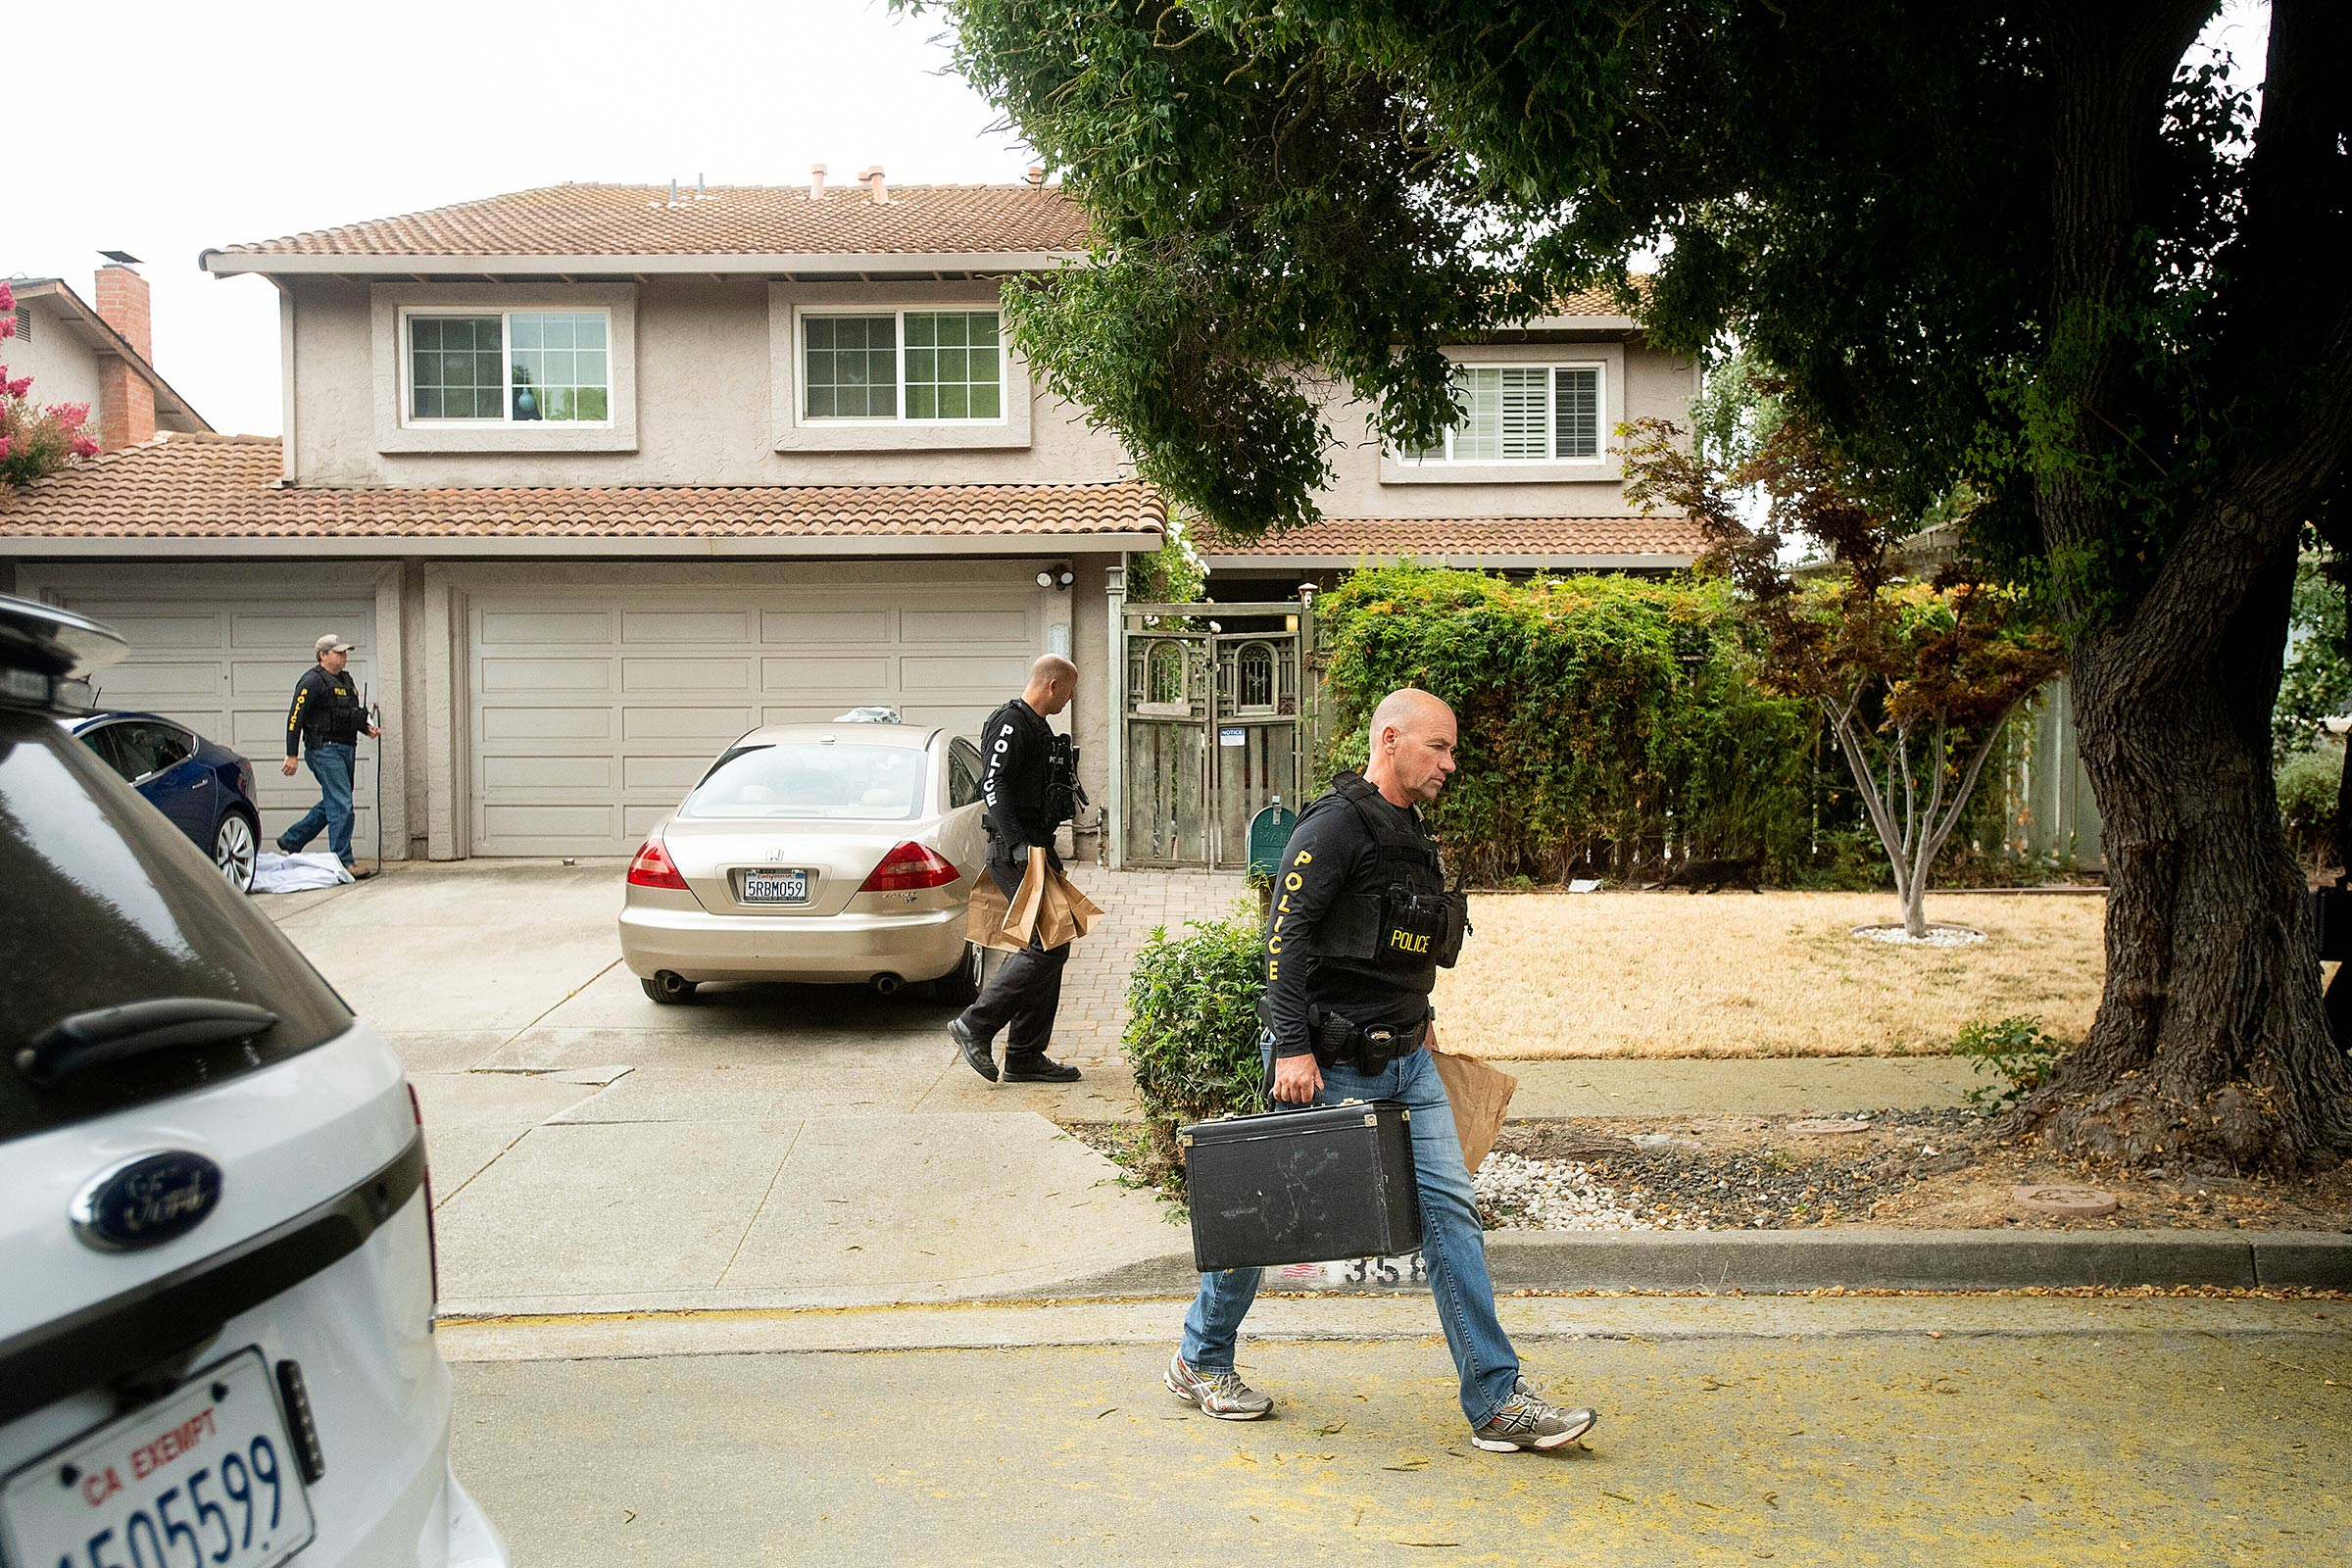 Police carry evidence bags from the home of the Gilroy shooting suspect.